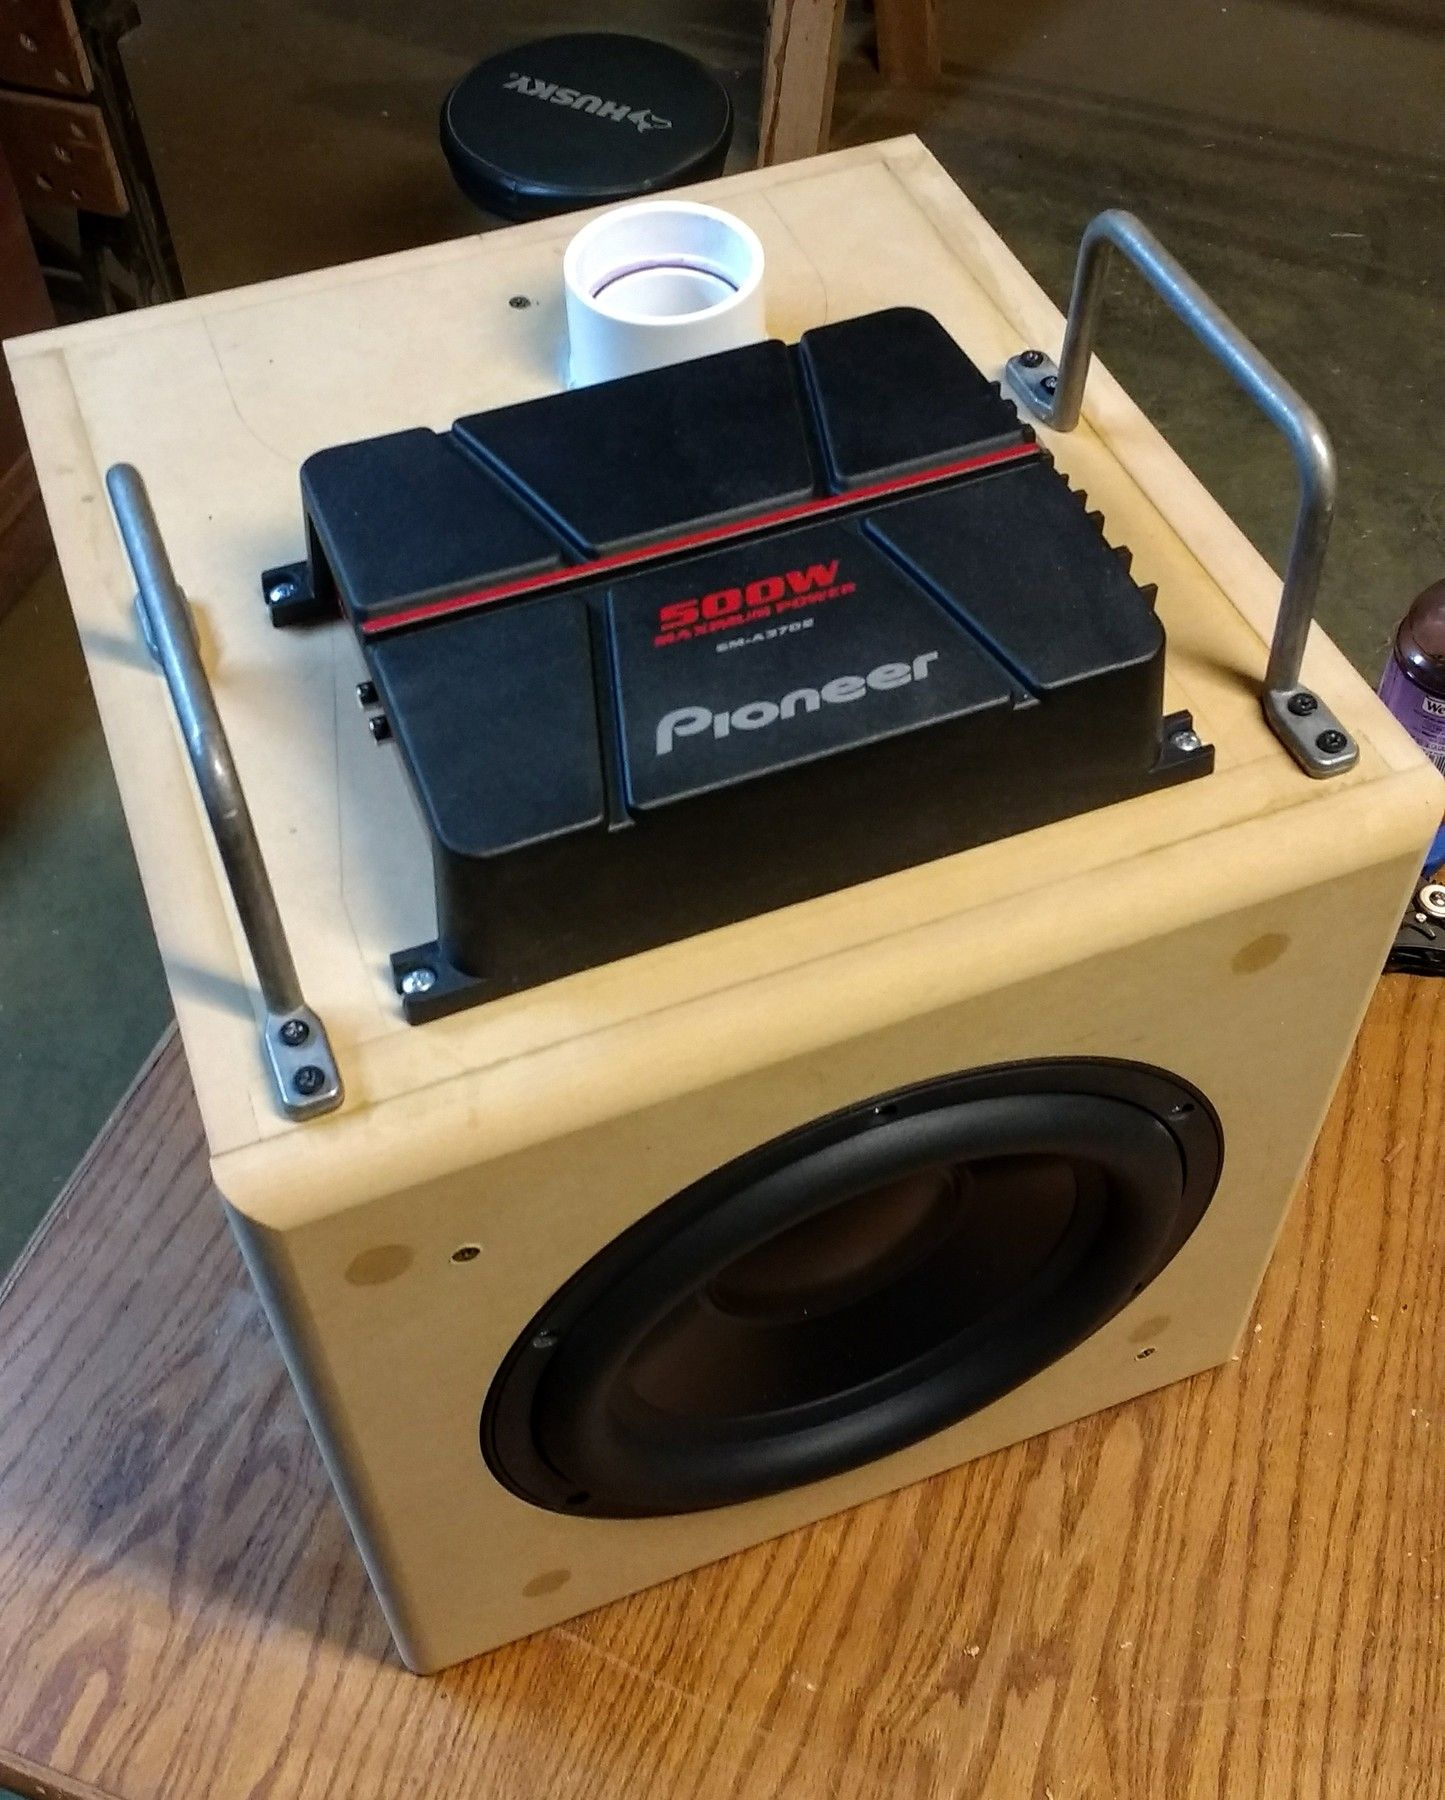 Subwoofer Kit Modified With 2 Pvc Reflex Port Powered By Pioneer Amp Kits Channel Audio Amplifier Circuit Board For Diy Gma3702 Car